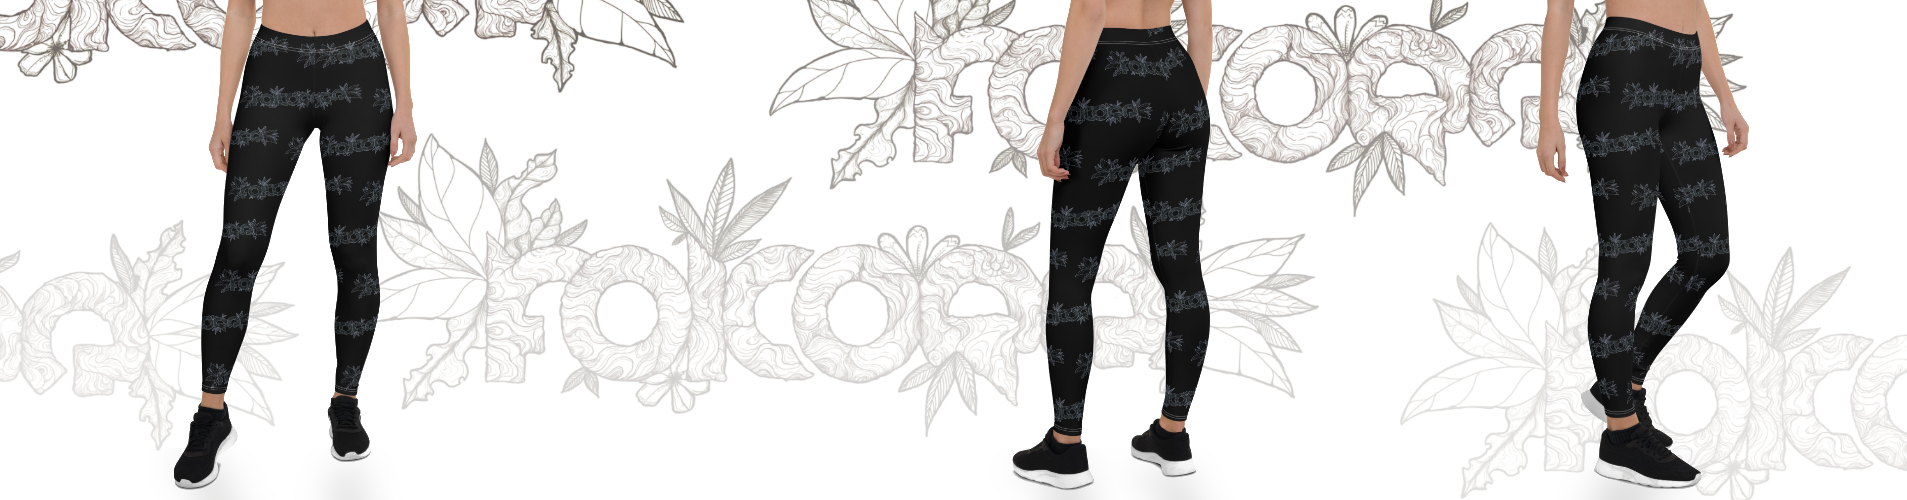 Banner Leggings2